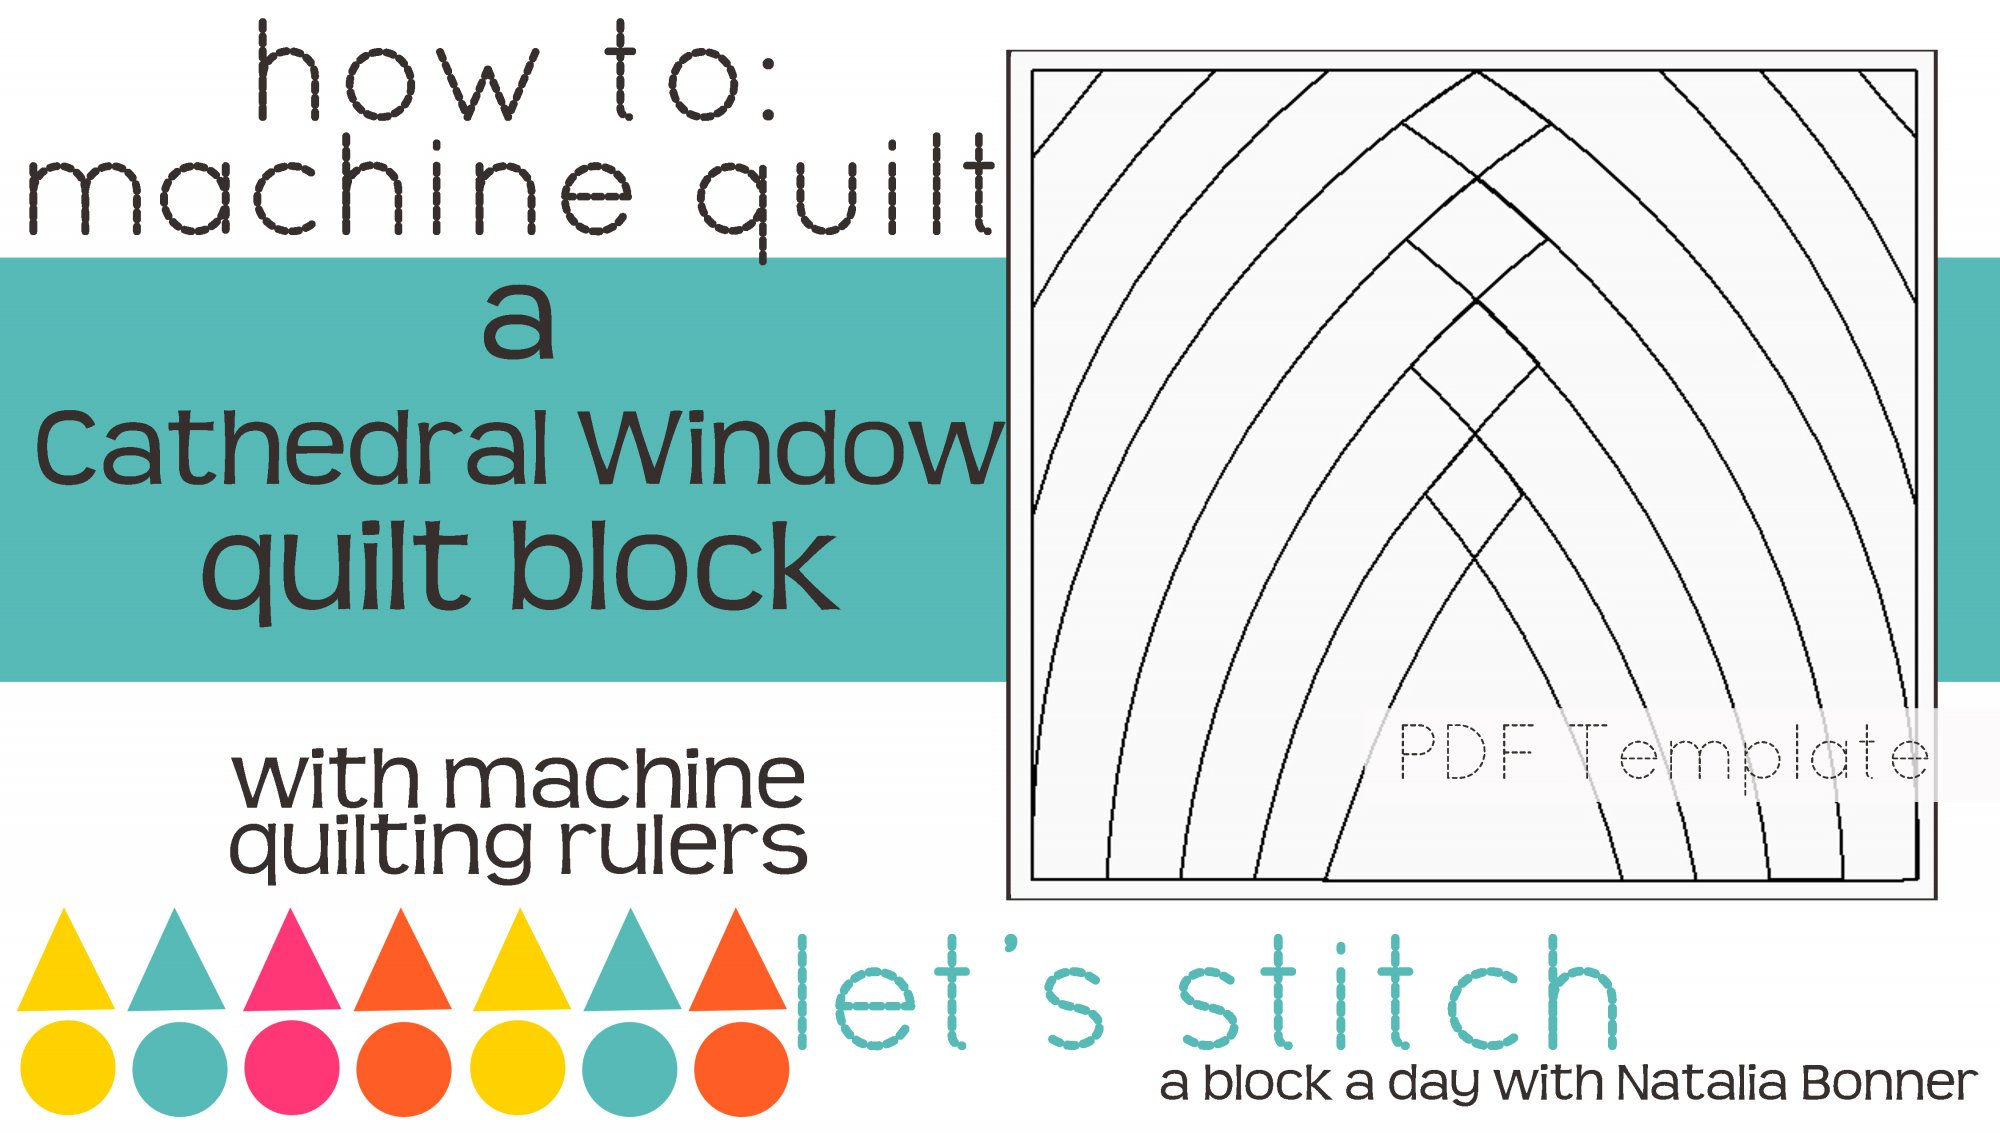 Let's Stitch - A Block a Day With Natalia Bonner - PDF - Cathedral Window